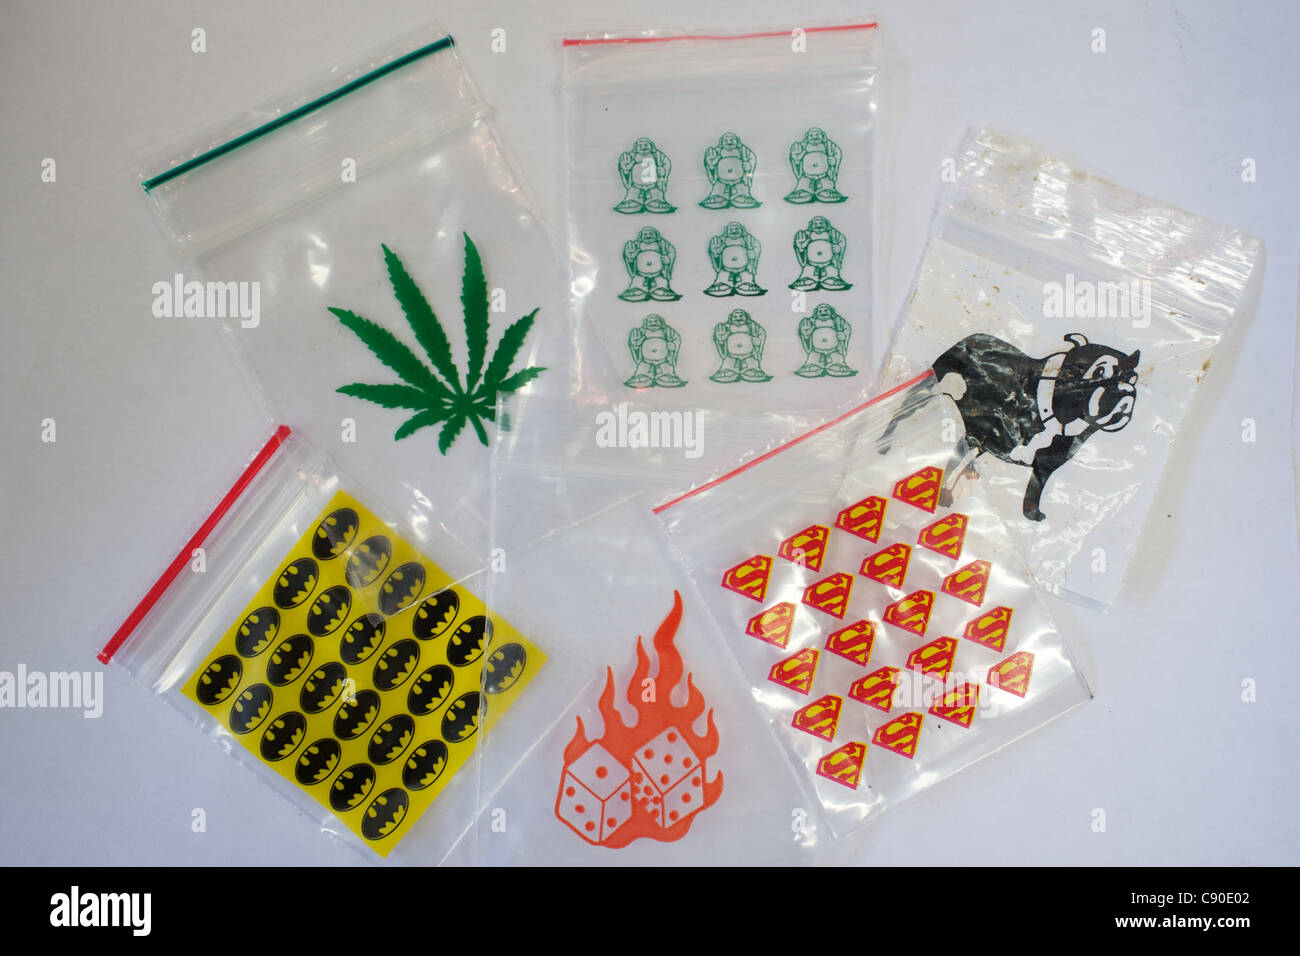 Illicit drugs paraphernalia in a secret academic research lab in London. - Stock Image